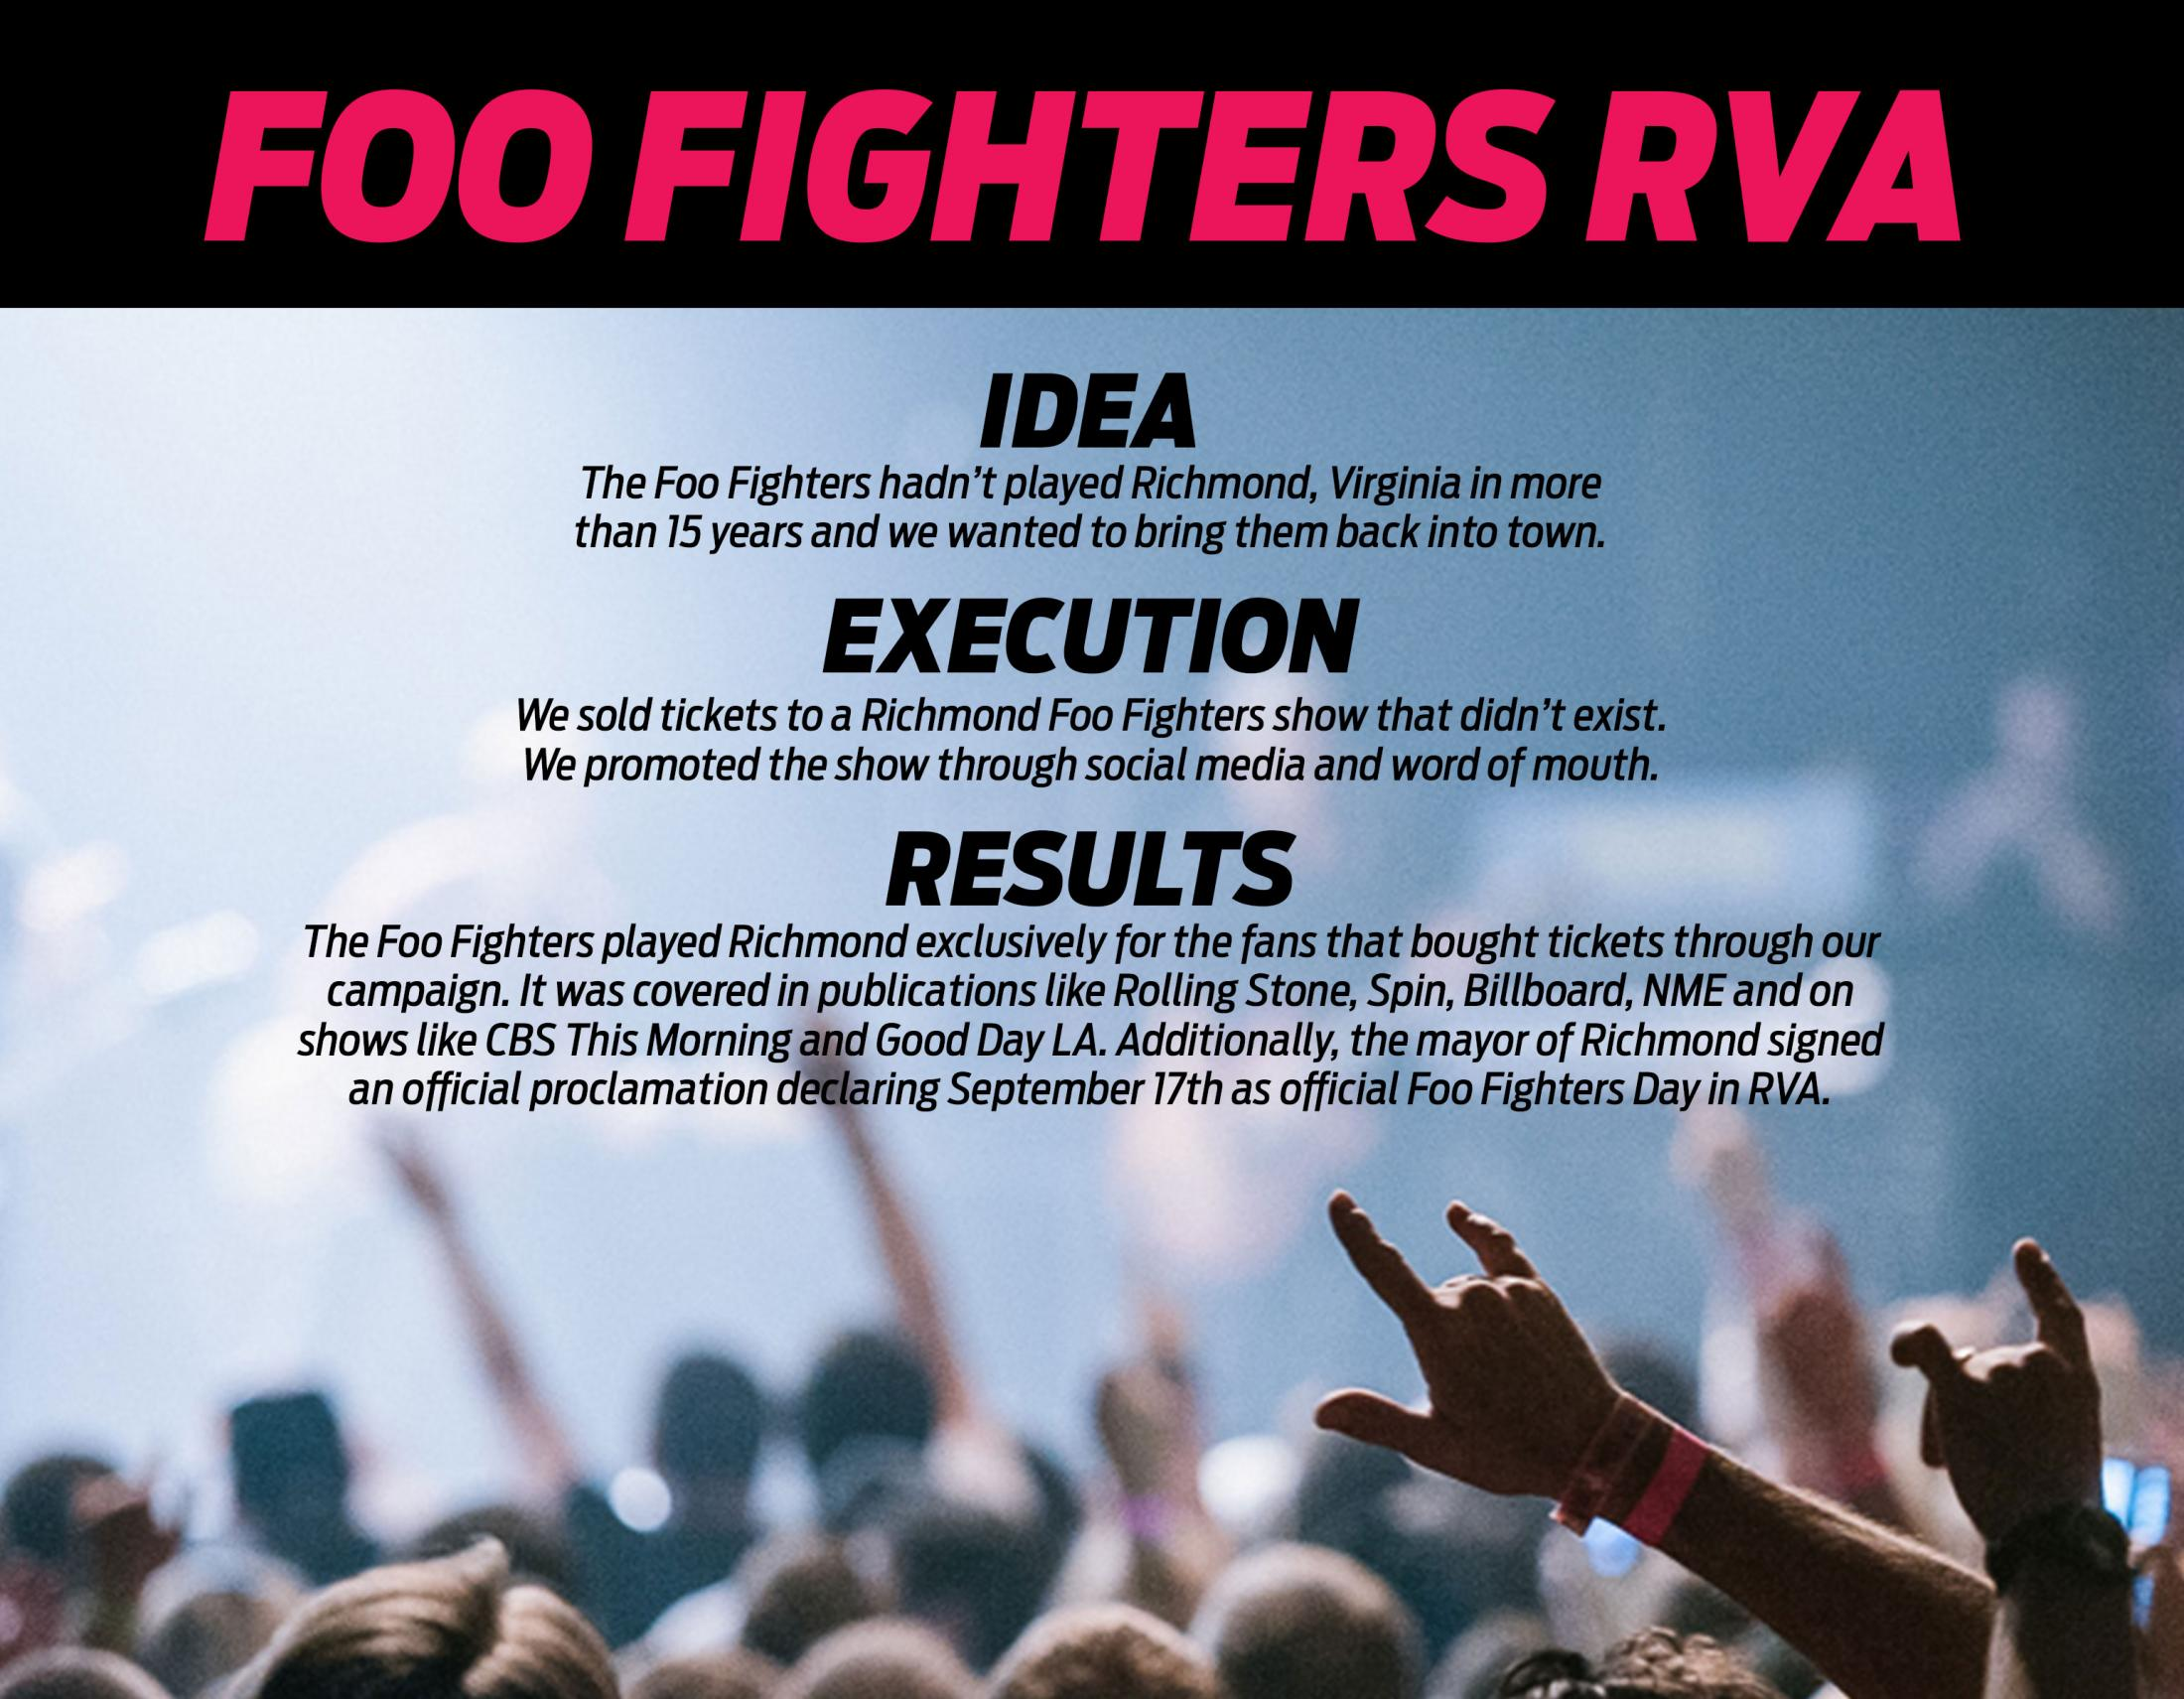 Thumbnail for Foo Fighters RVA